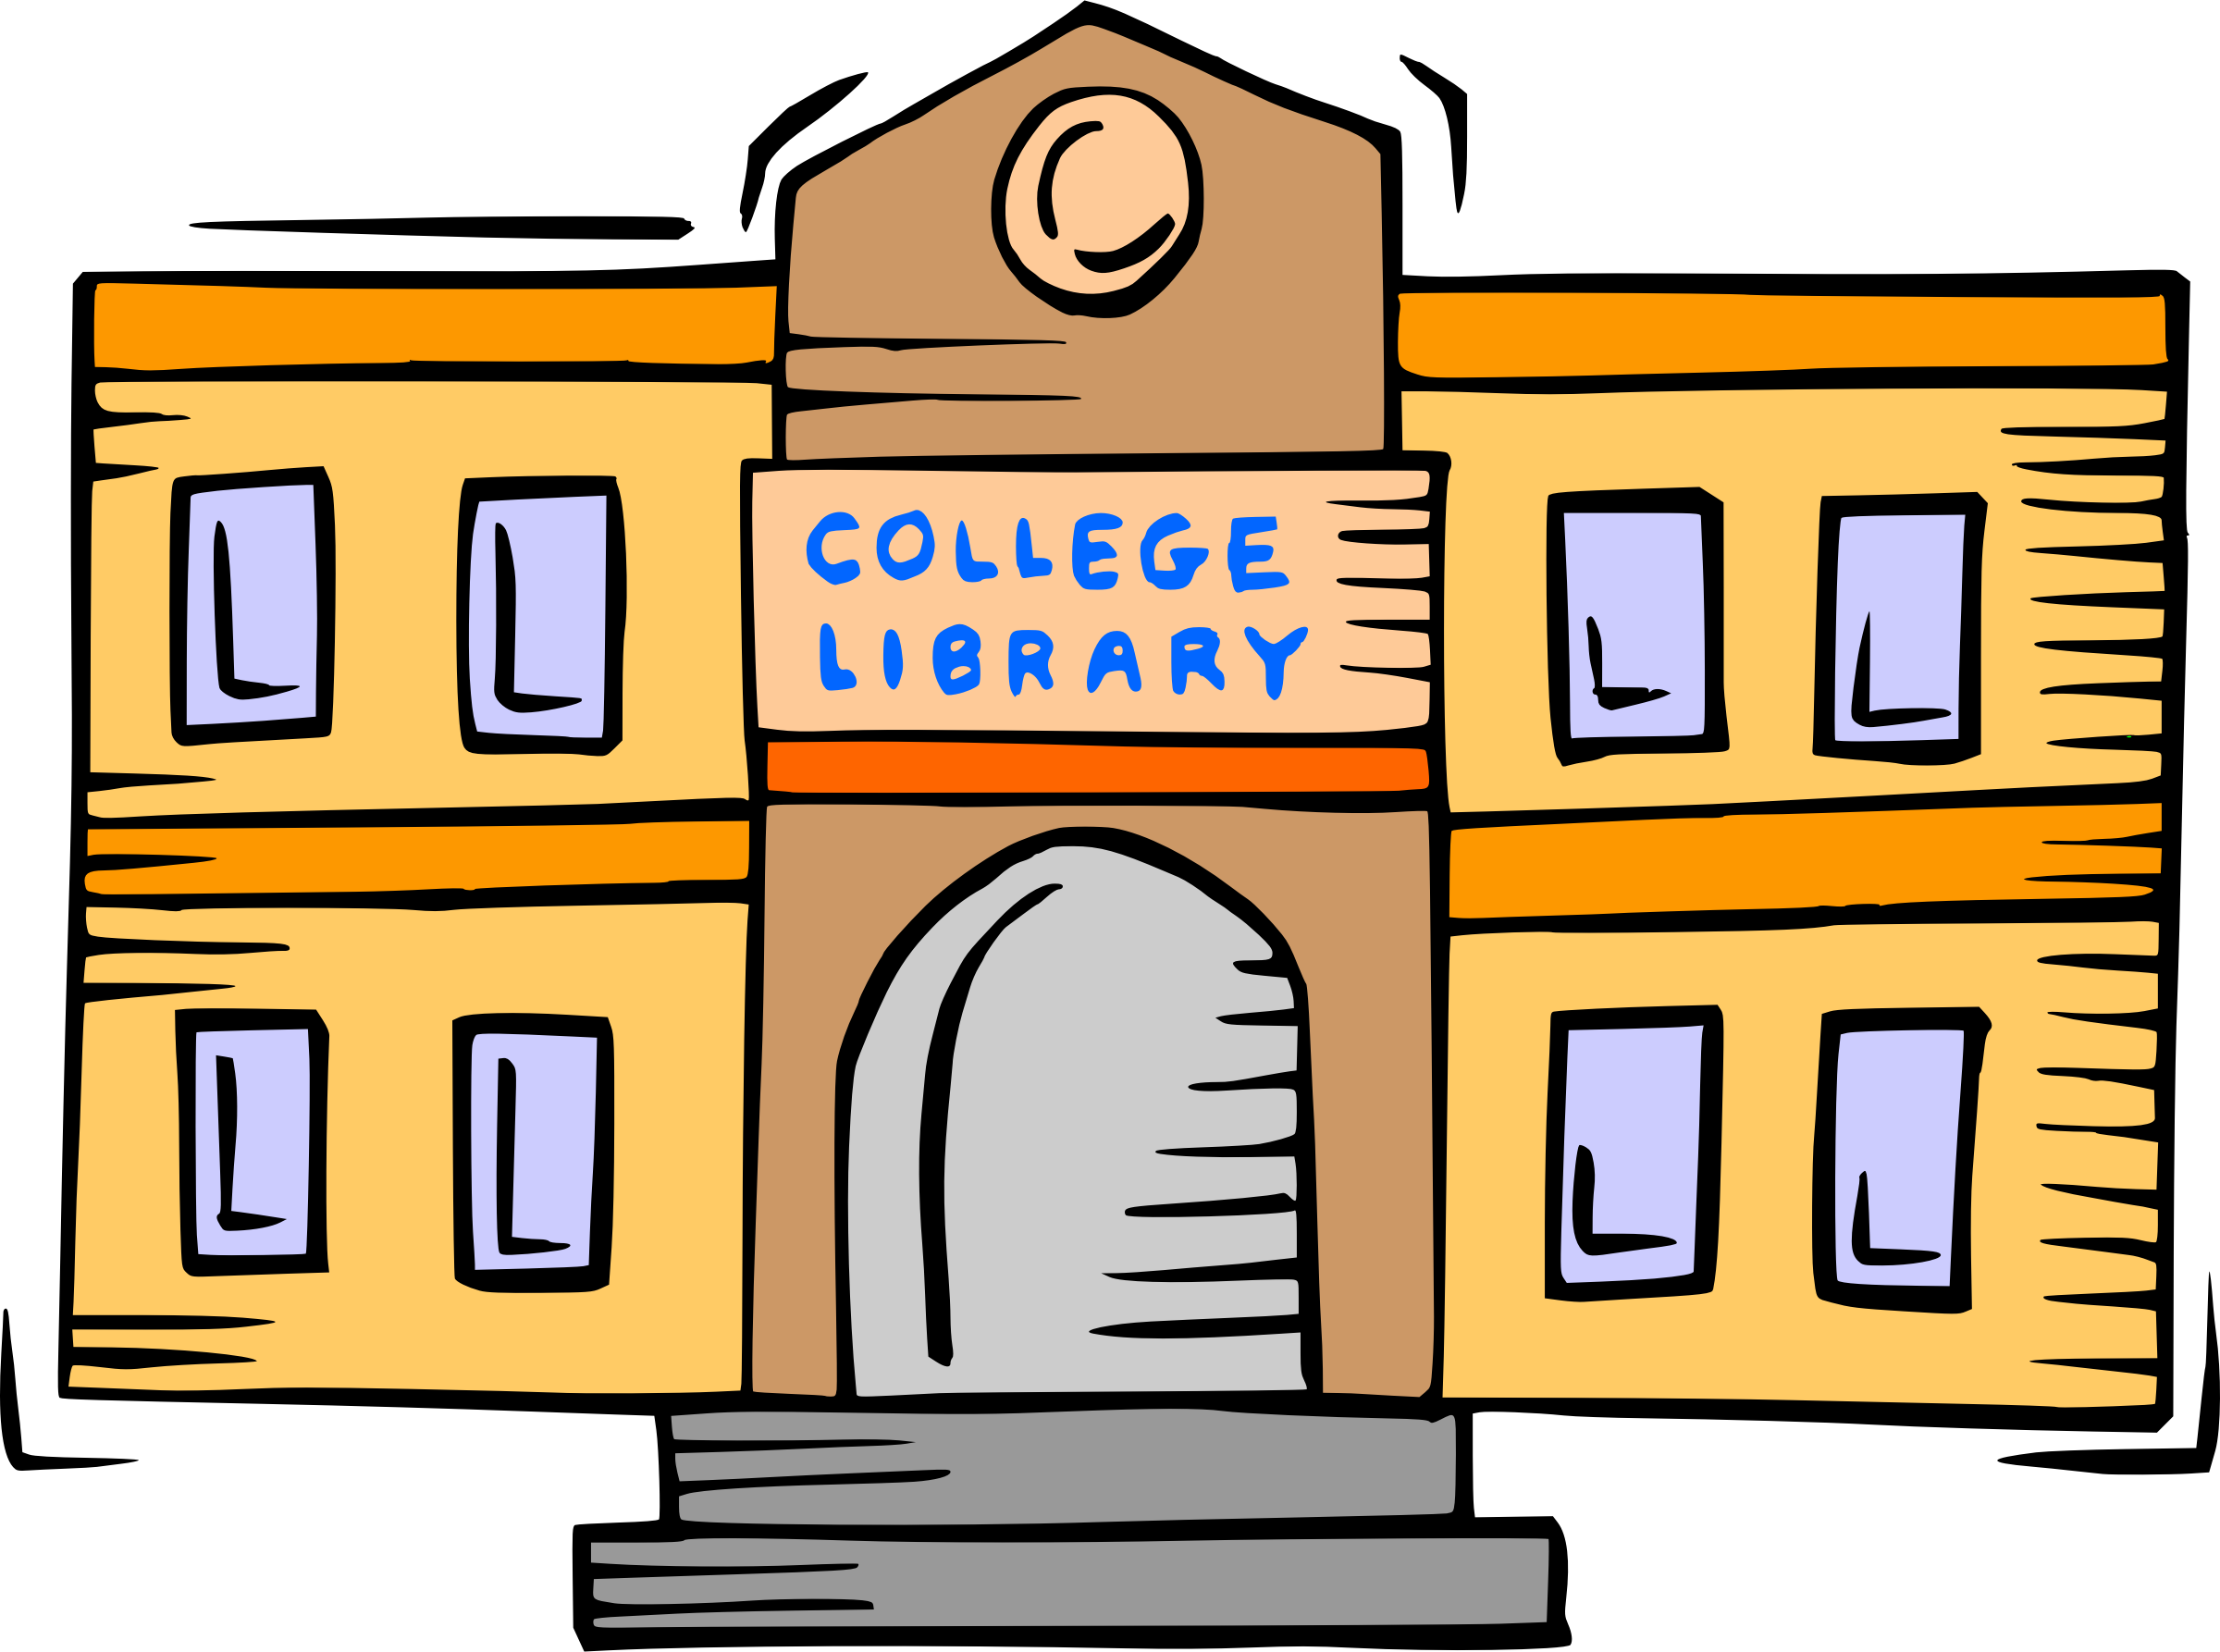 svg transparent library Library big image png. College clipart.